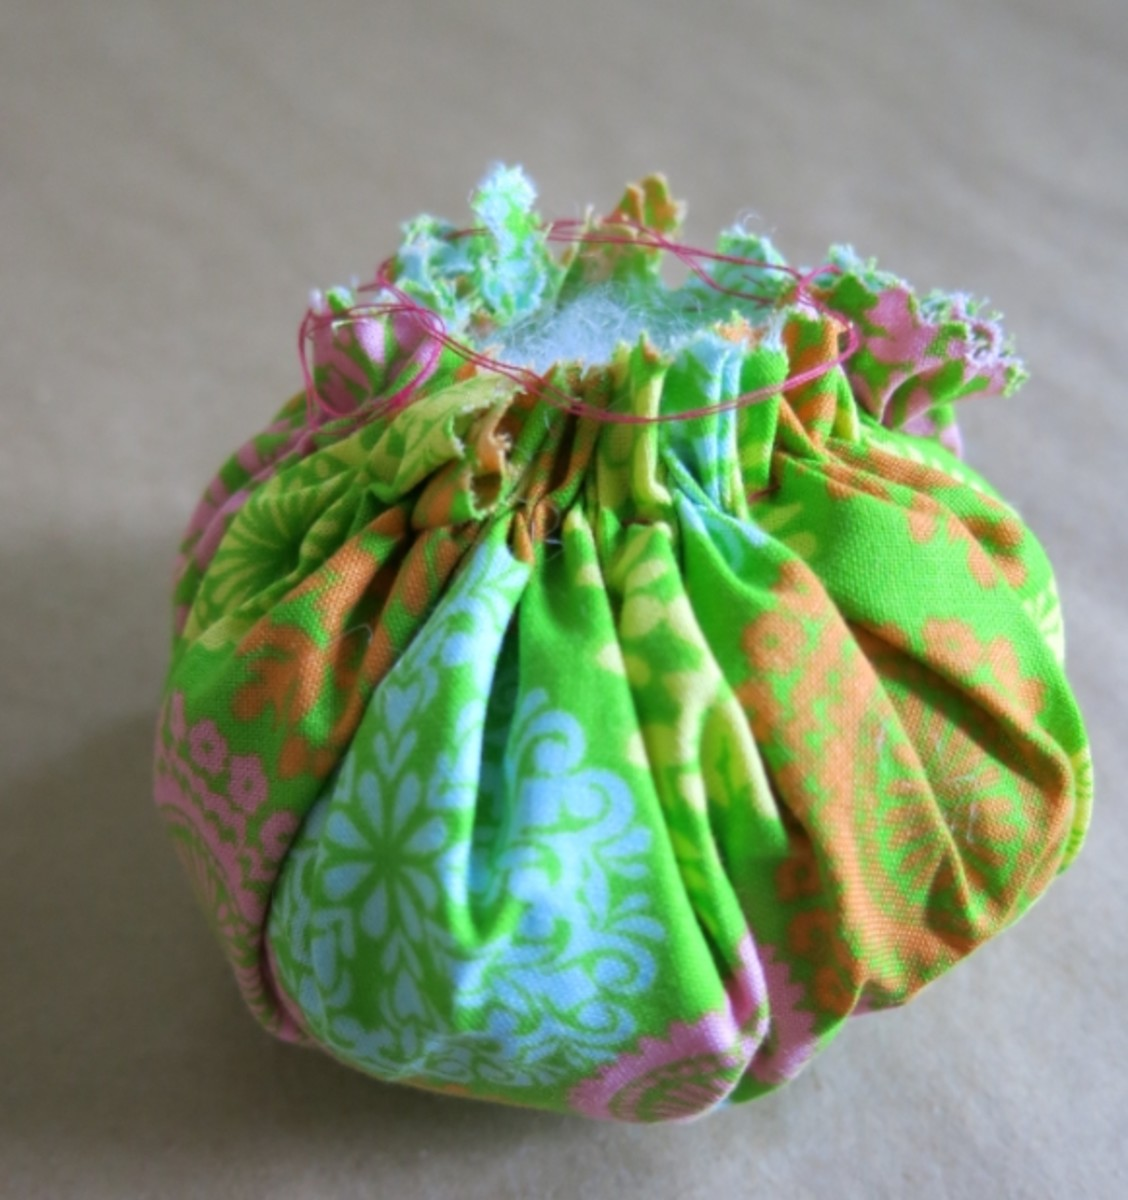 Gathering your fabric and adding stuffing to make the top of your pincushion